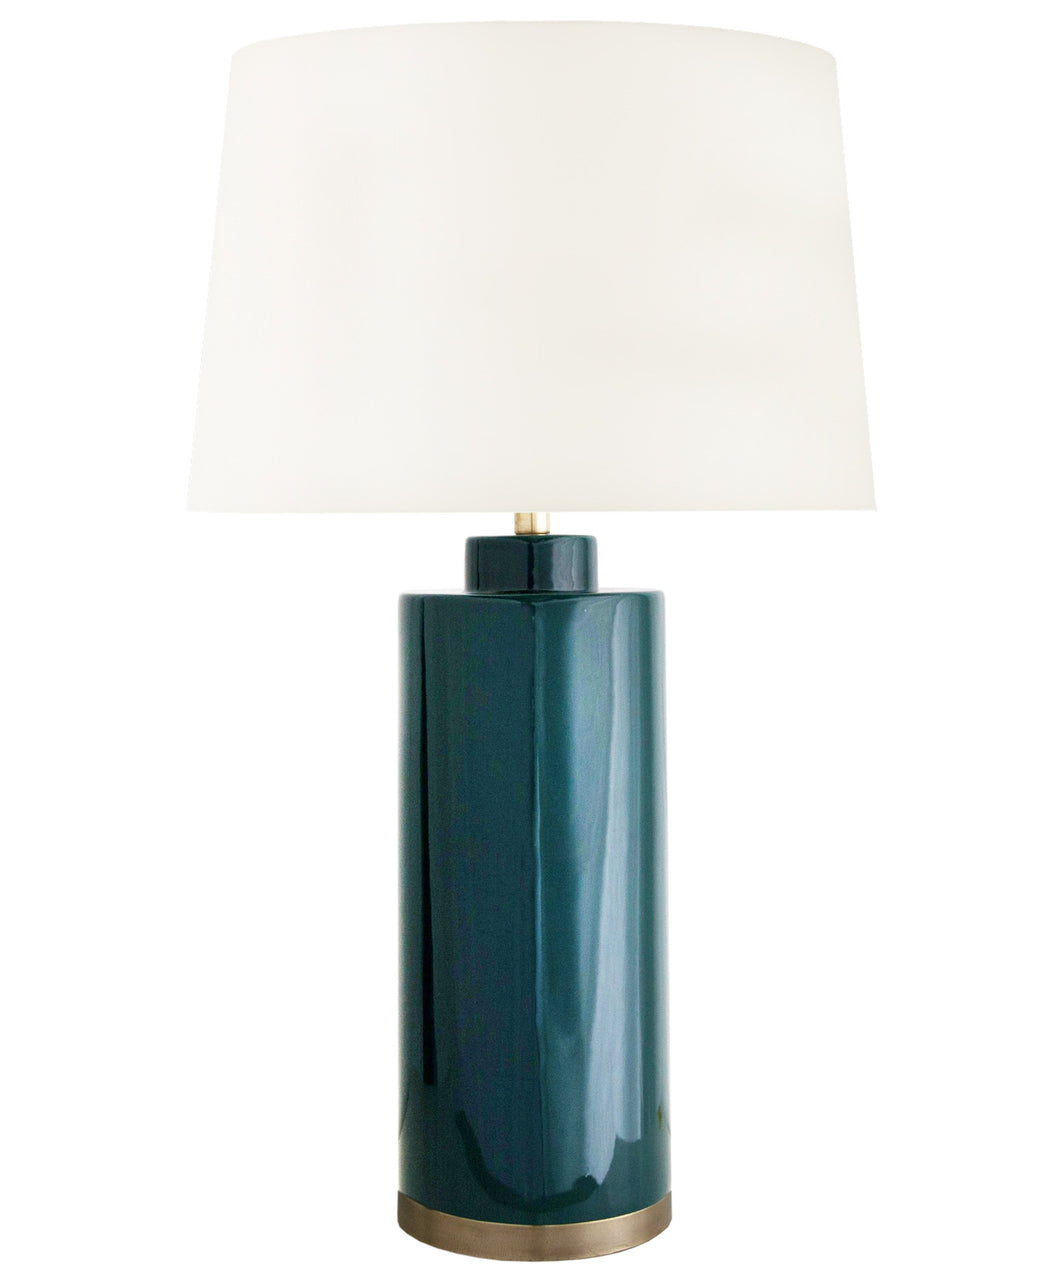 Tyler Table Lamp, Emerald